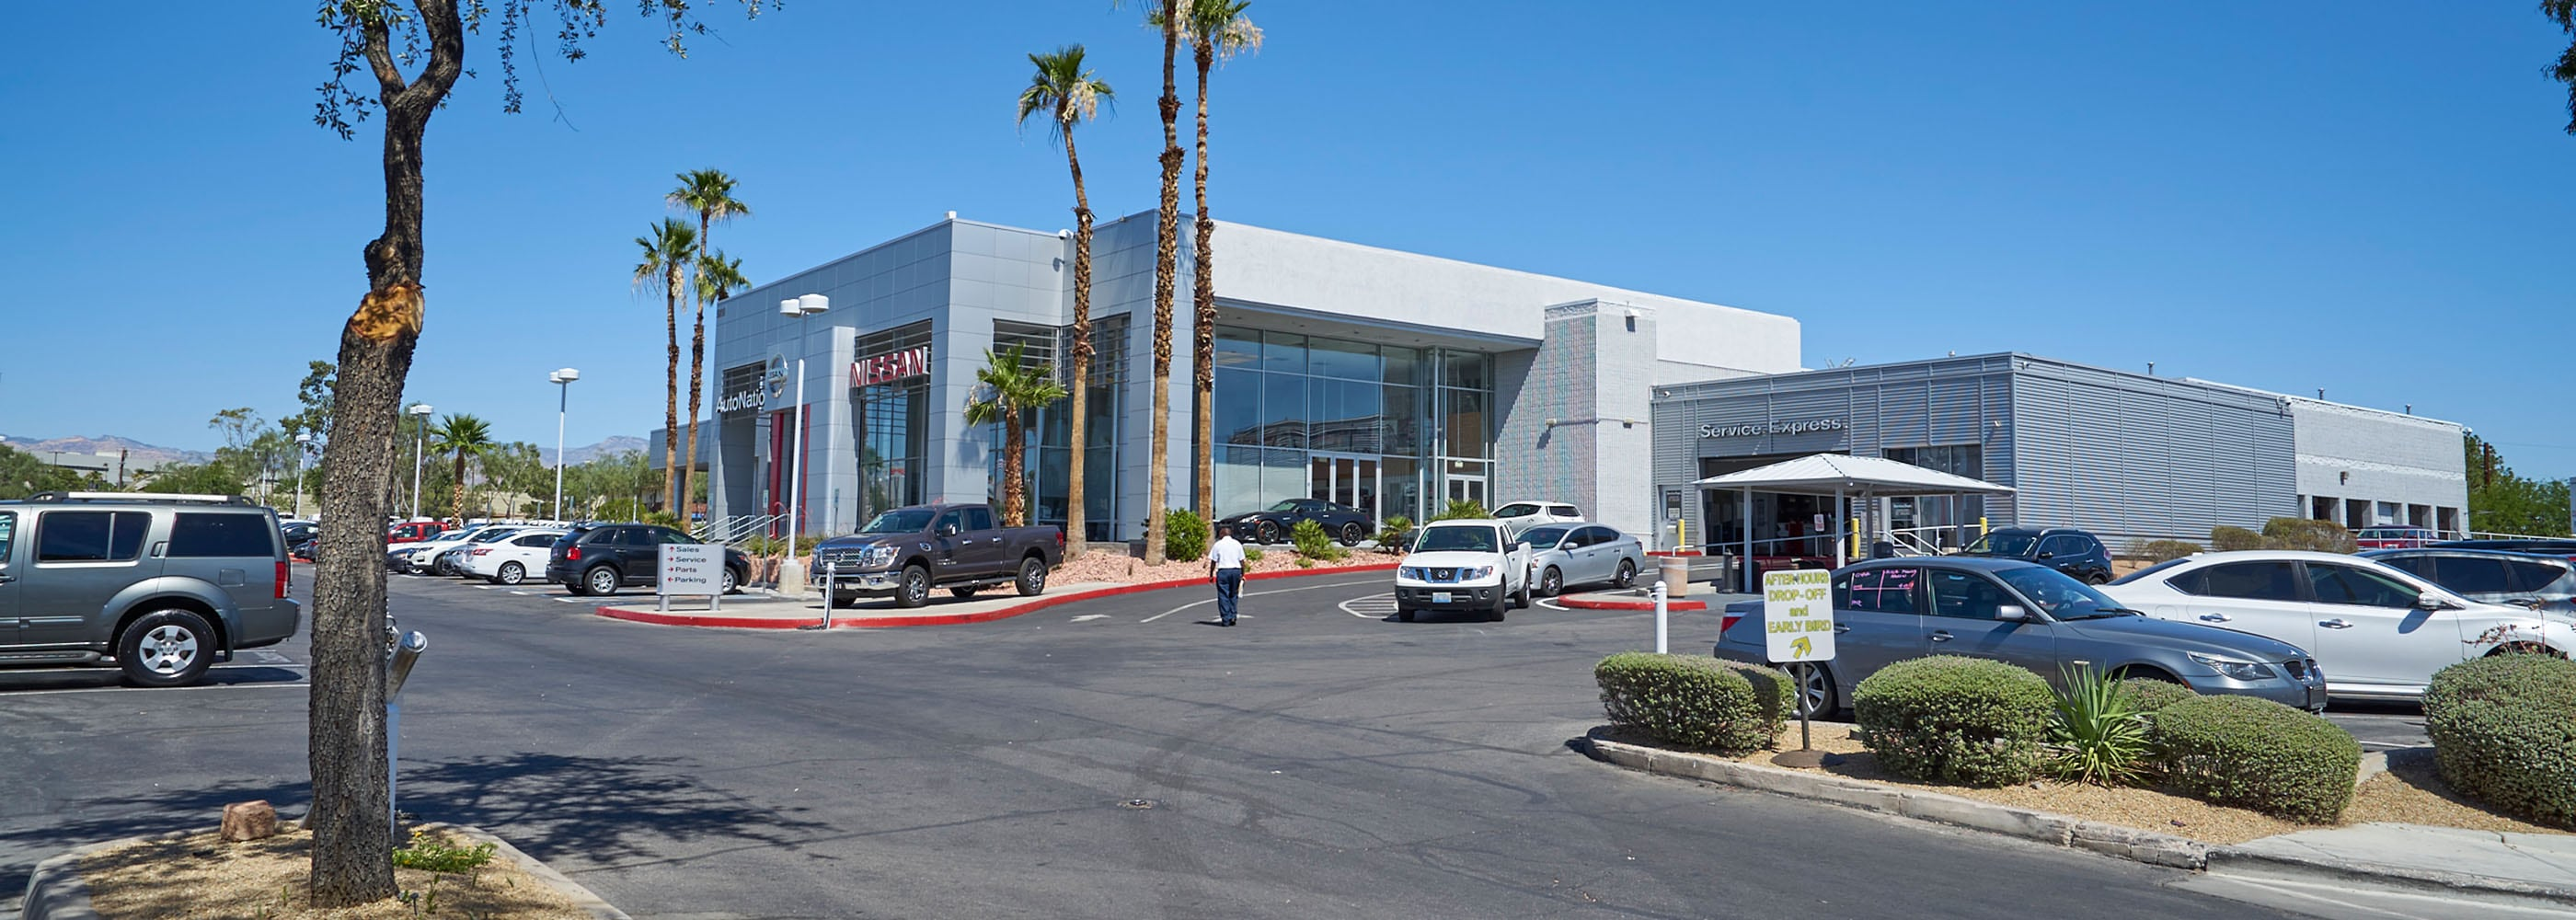 new & pre-owned nissan dealership near me in las vegas | autonation